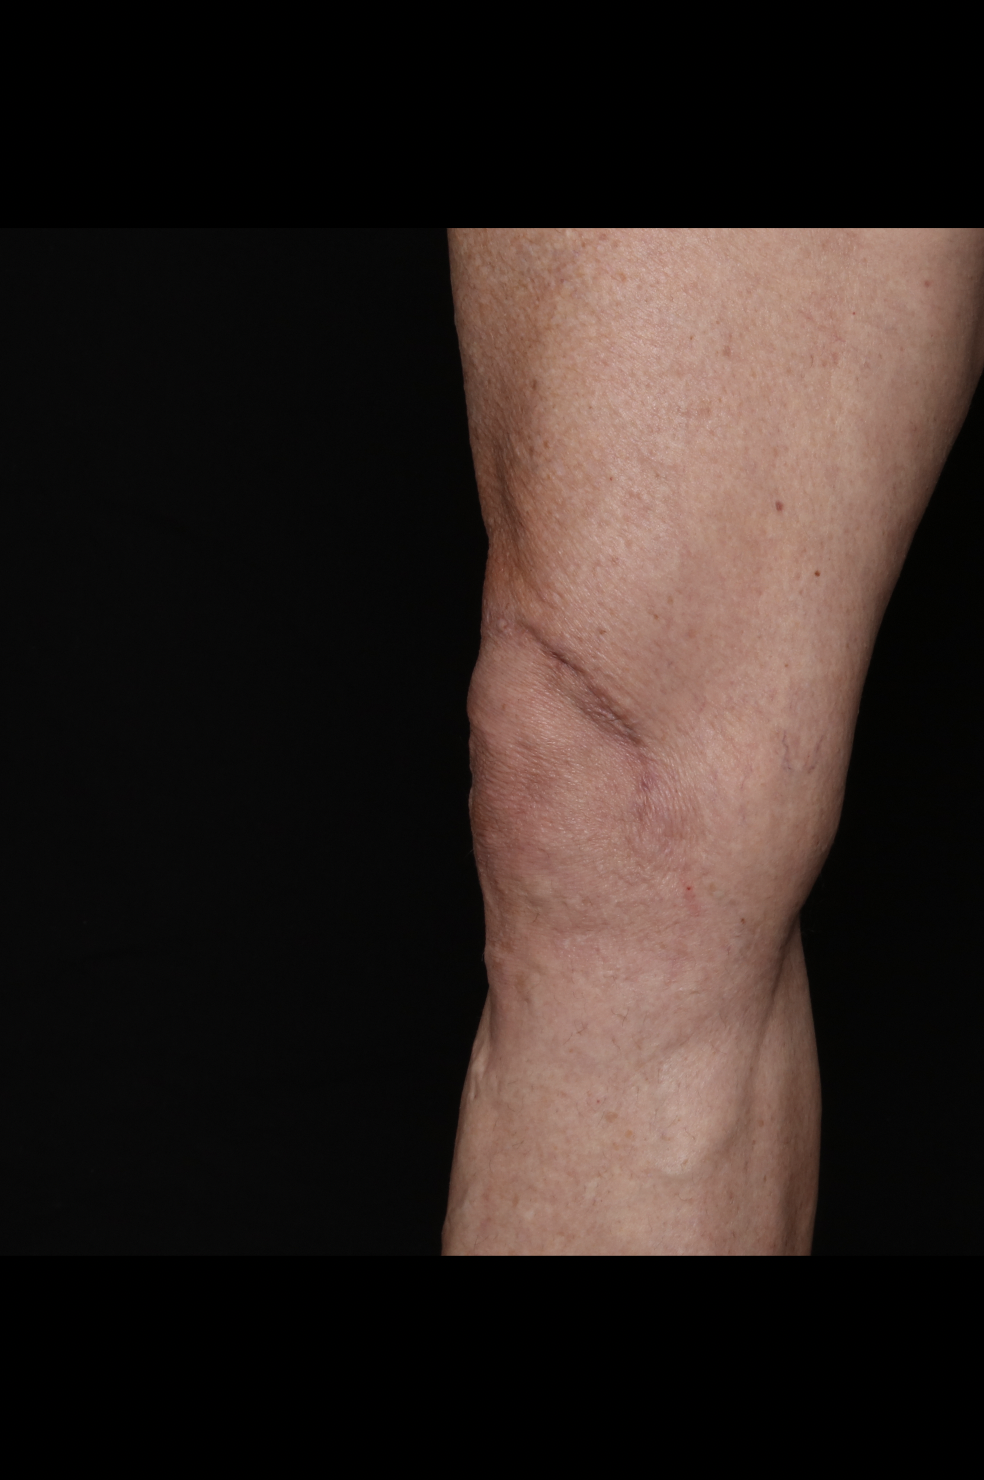 After Thighs Procedure - Side View